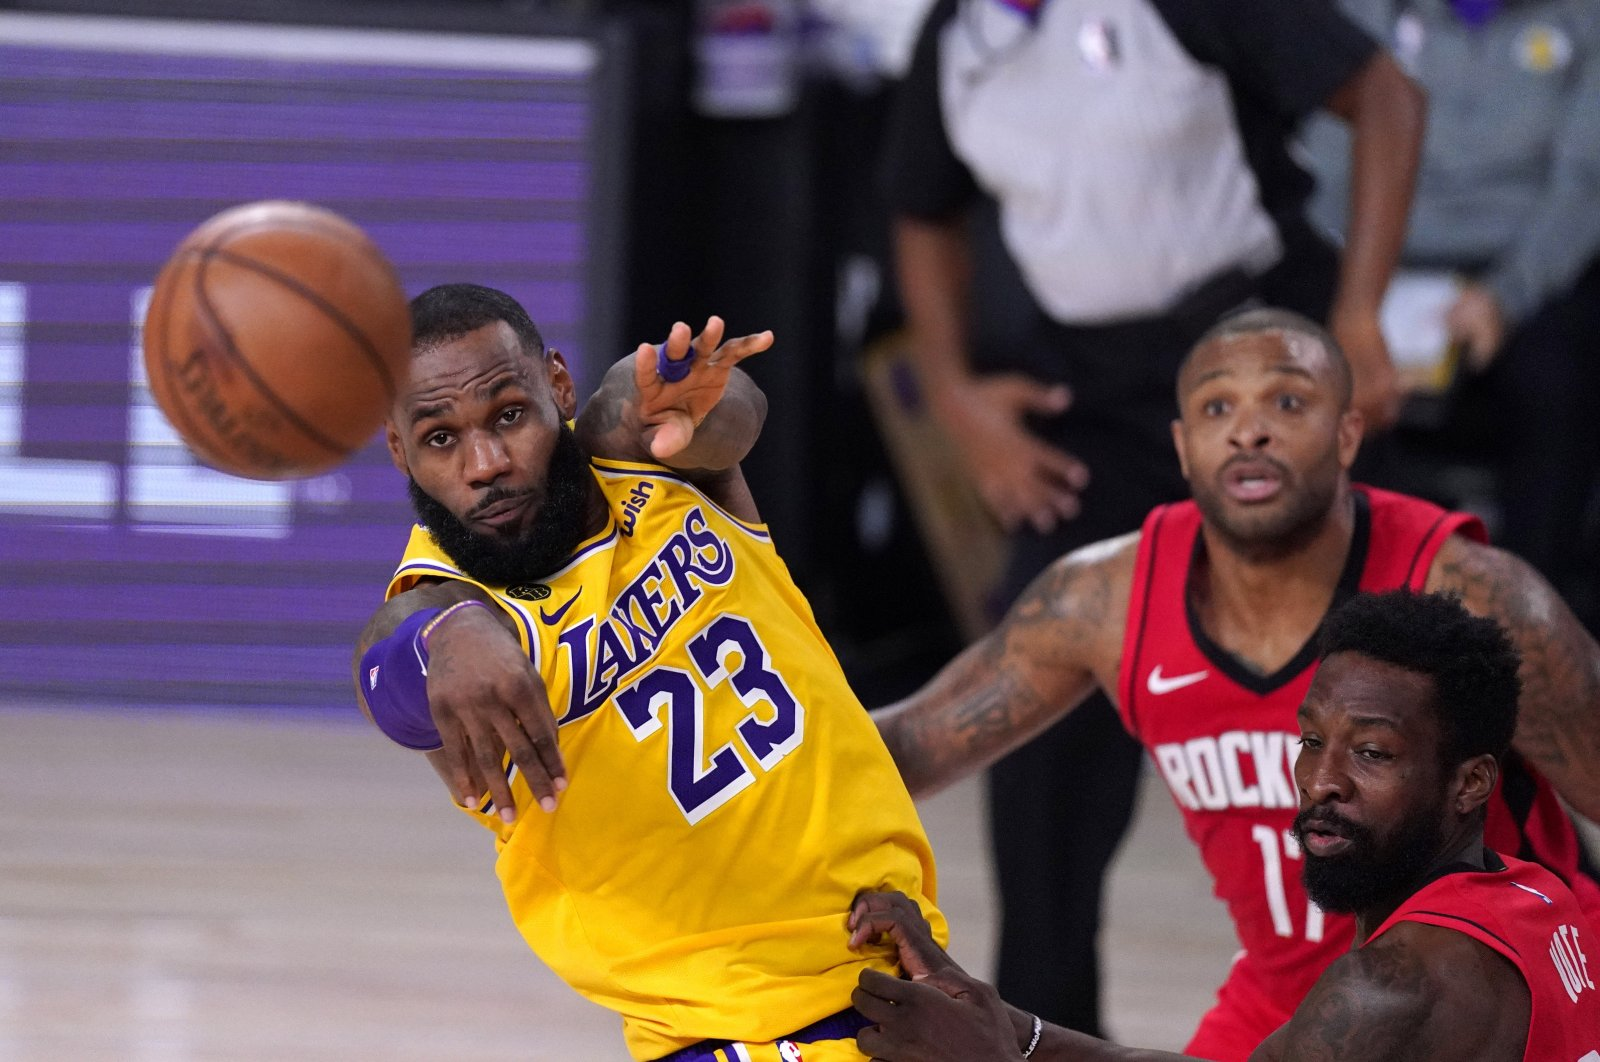 Los Angeles Lakers' LeBron James (L) passes the ball during an NBA match against the Houston Rockets in Lake Buena Vista, Florida, U.S., Sept. 10, 2020. (AP Photo)